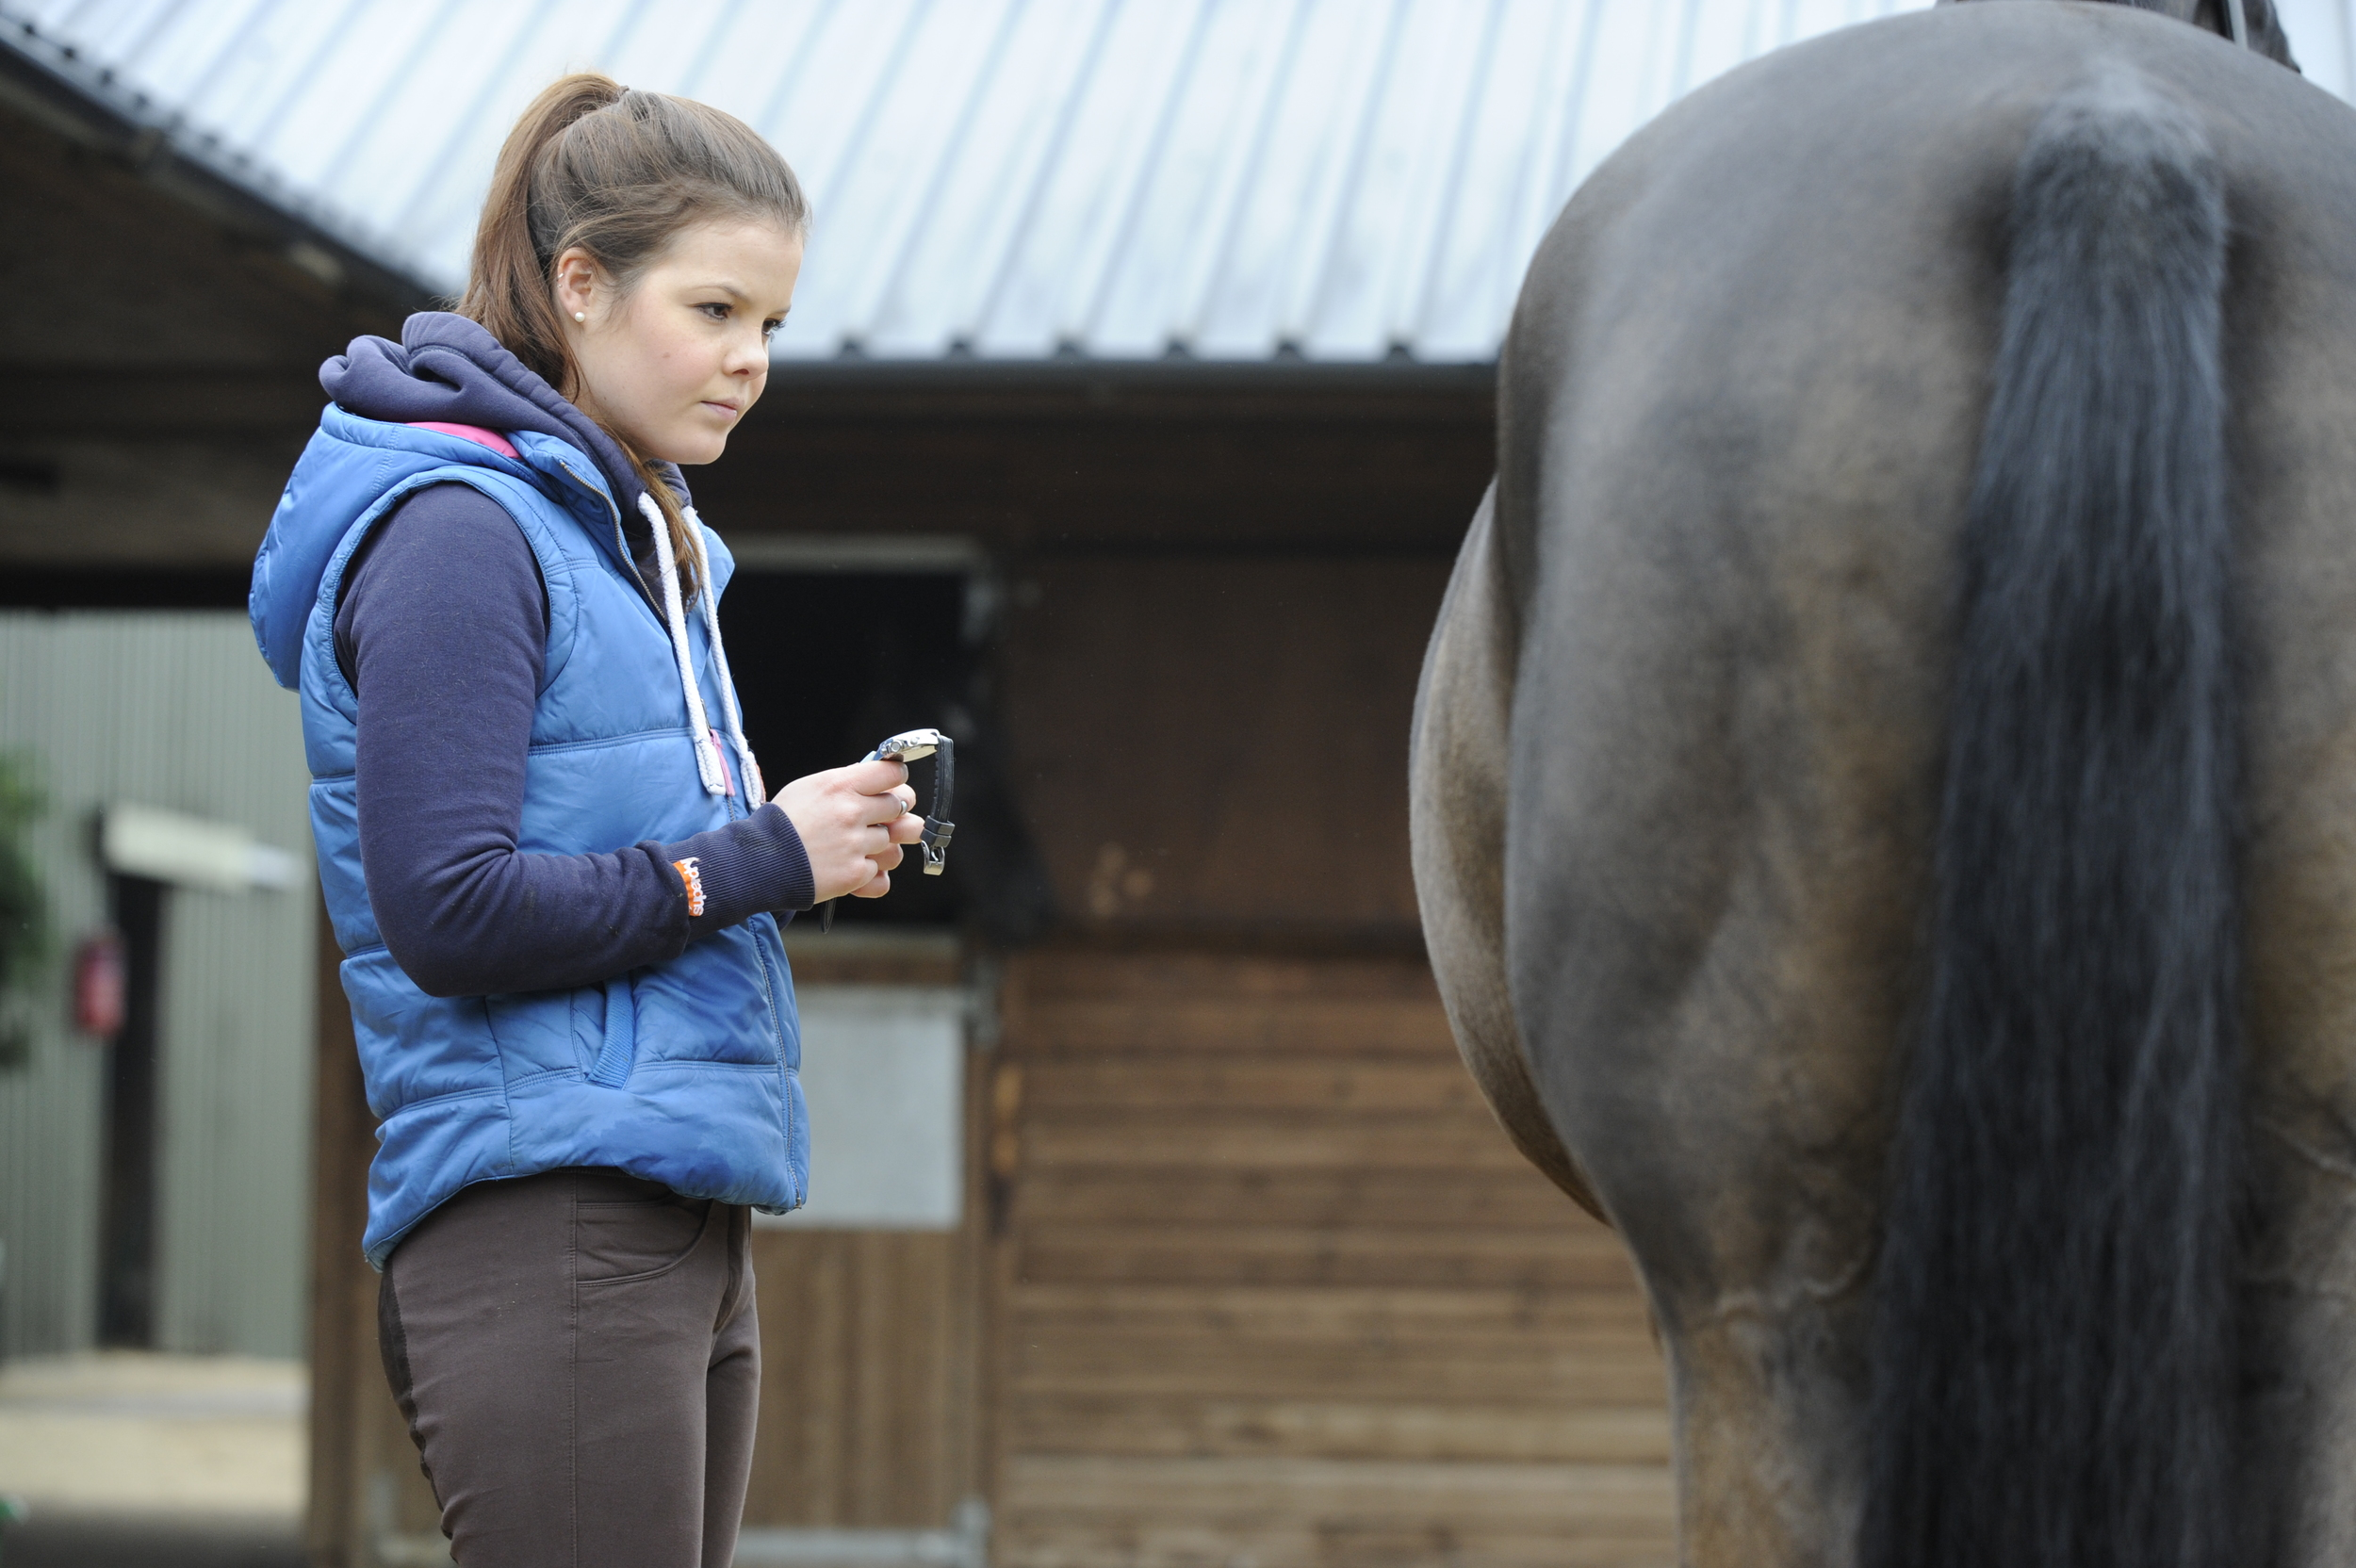 To check your horse's respiration rate you'll need to stand to the side of him, a few feet away and watch his ribcage rising and falling